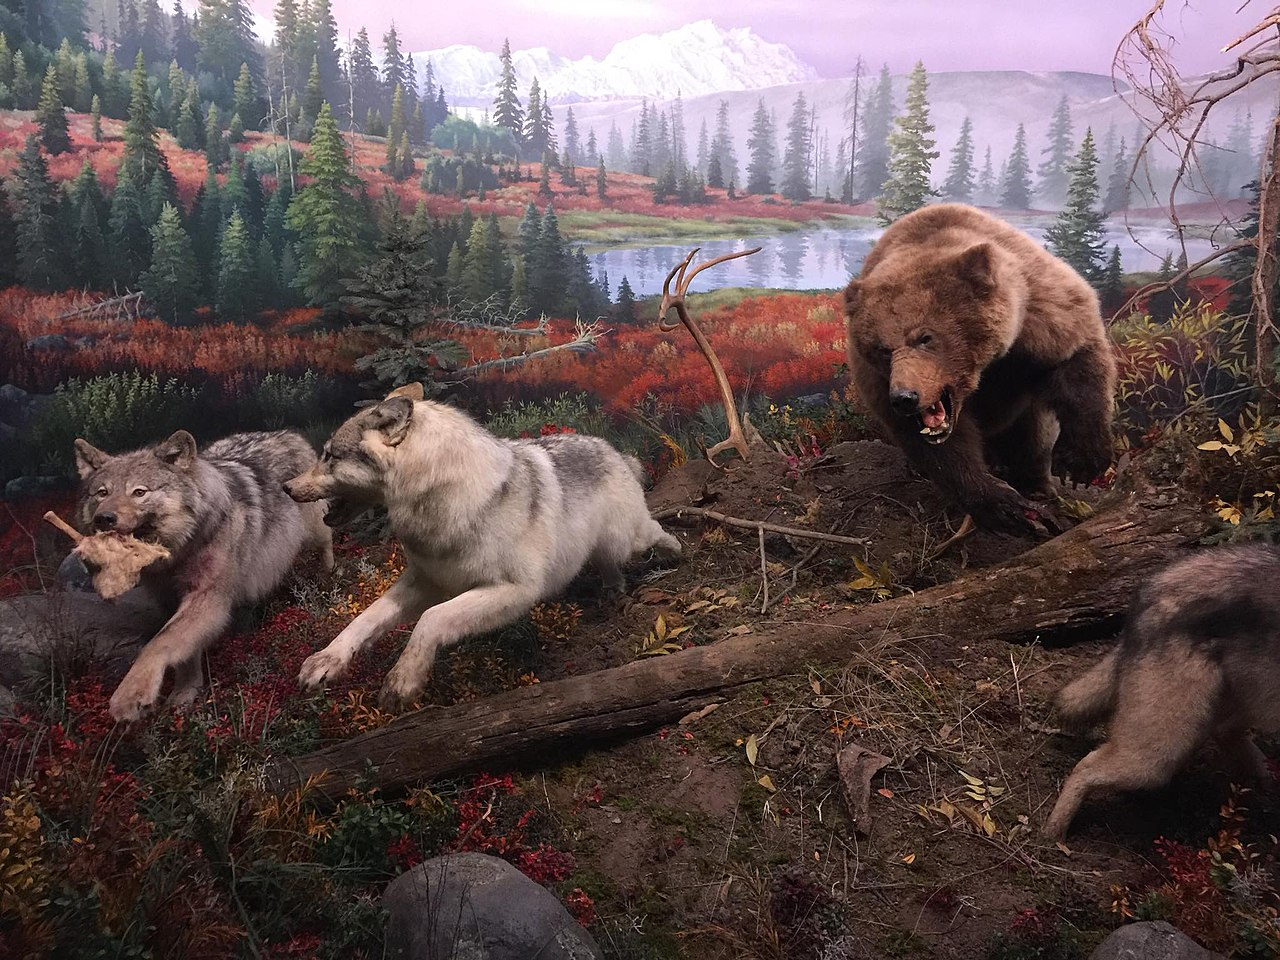 There are several immersive exhibits showing wildlife in their natural habitats.